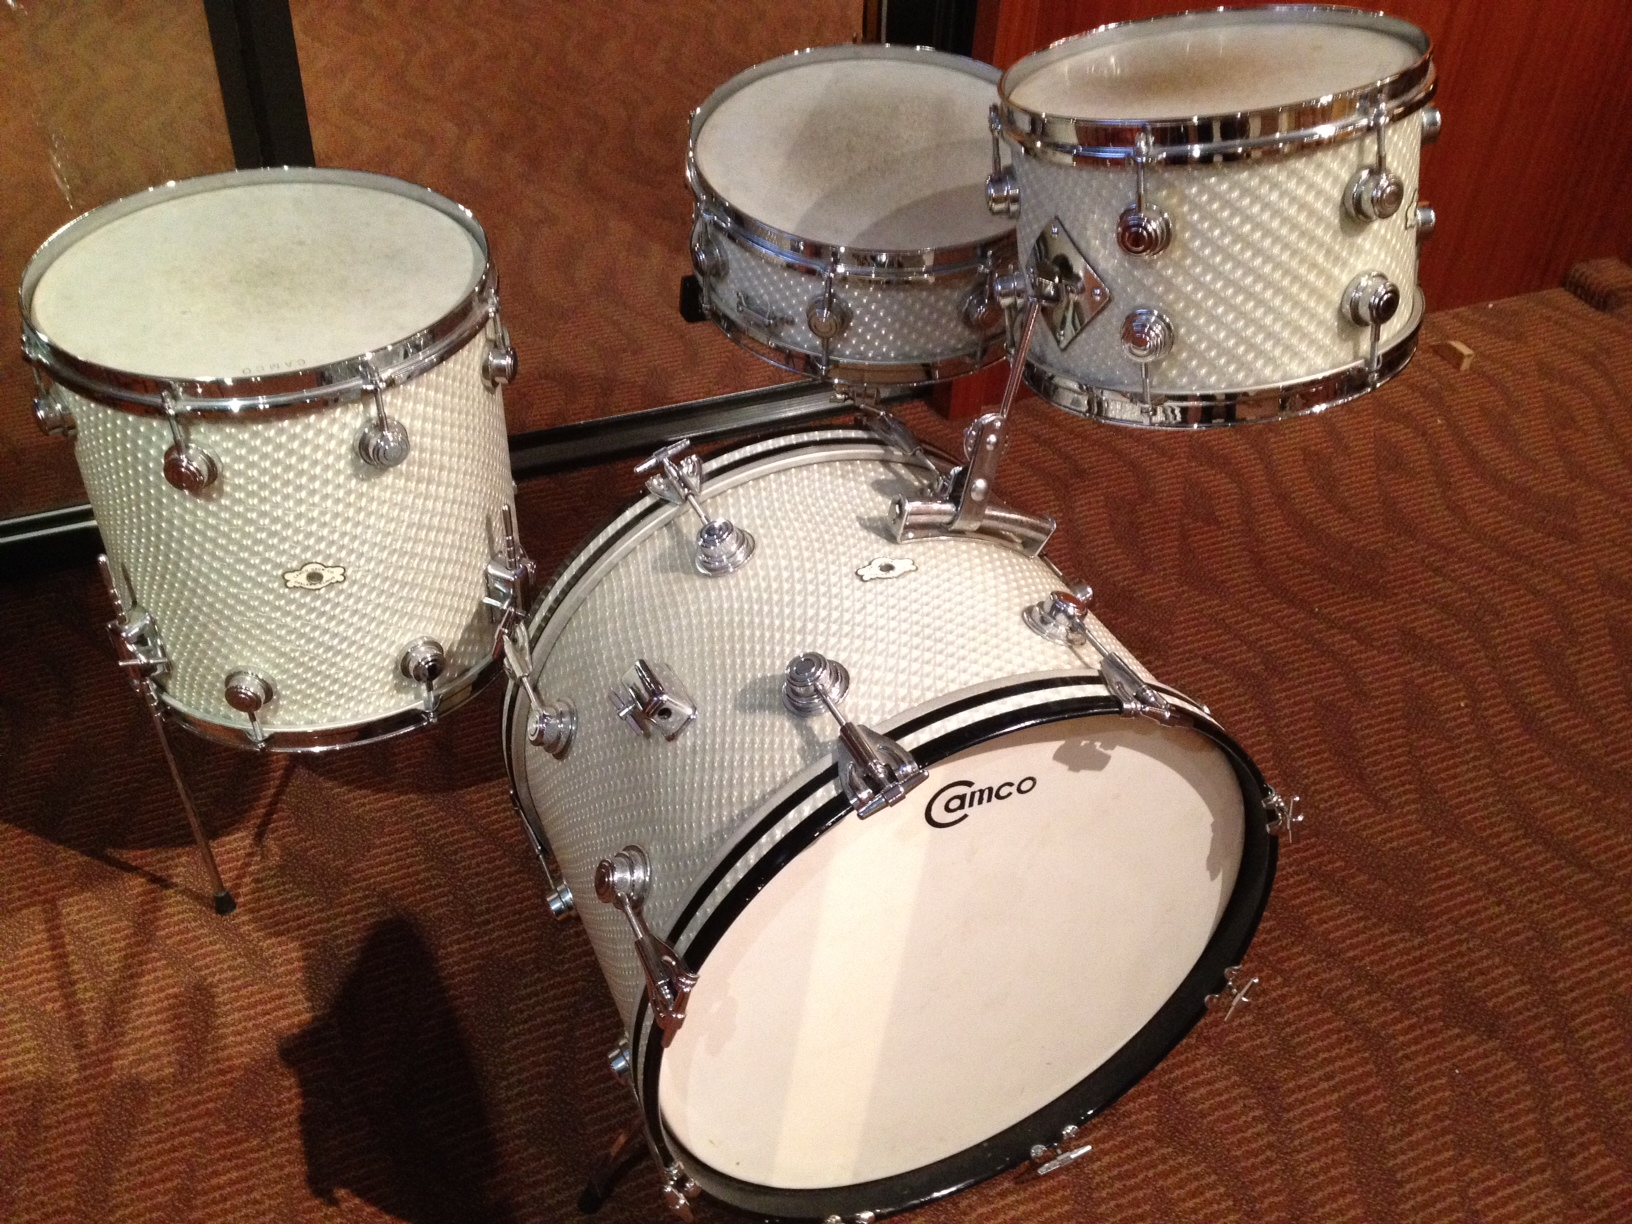 Camco Oaklawn 20,12,14,5.5 3D Moire!! One owner drum set